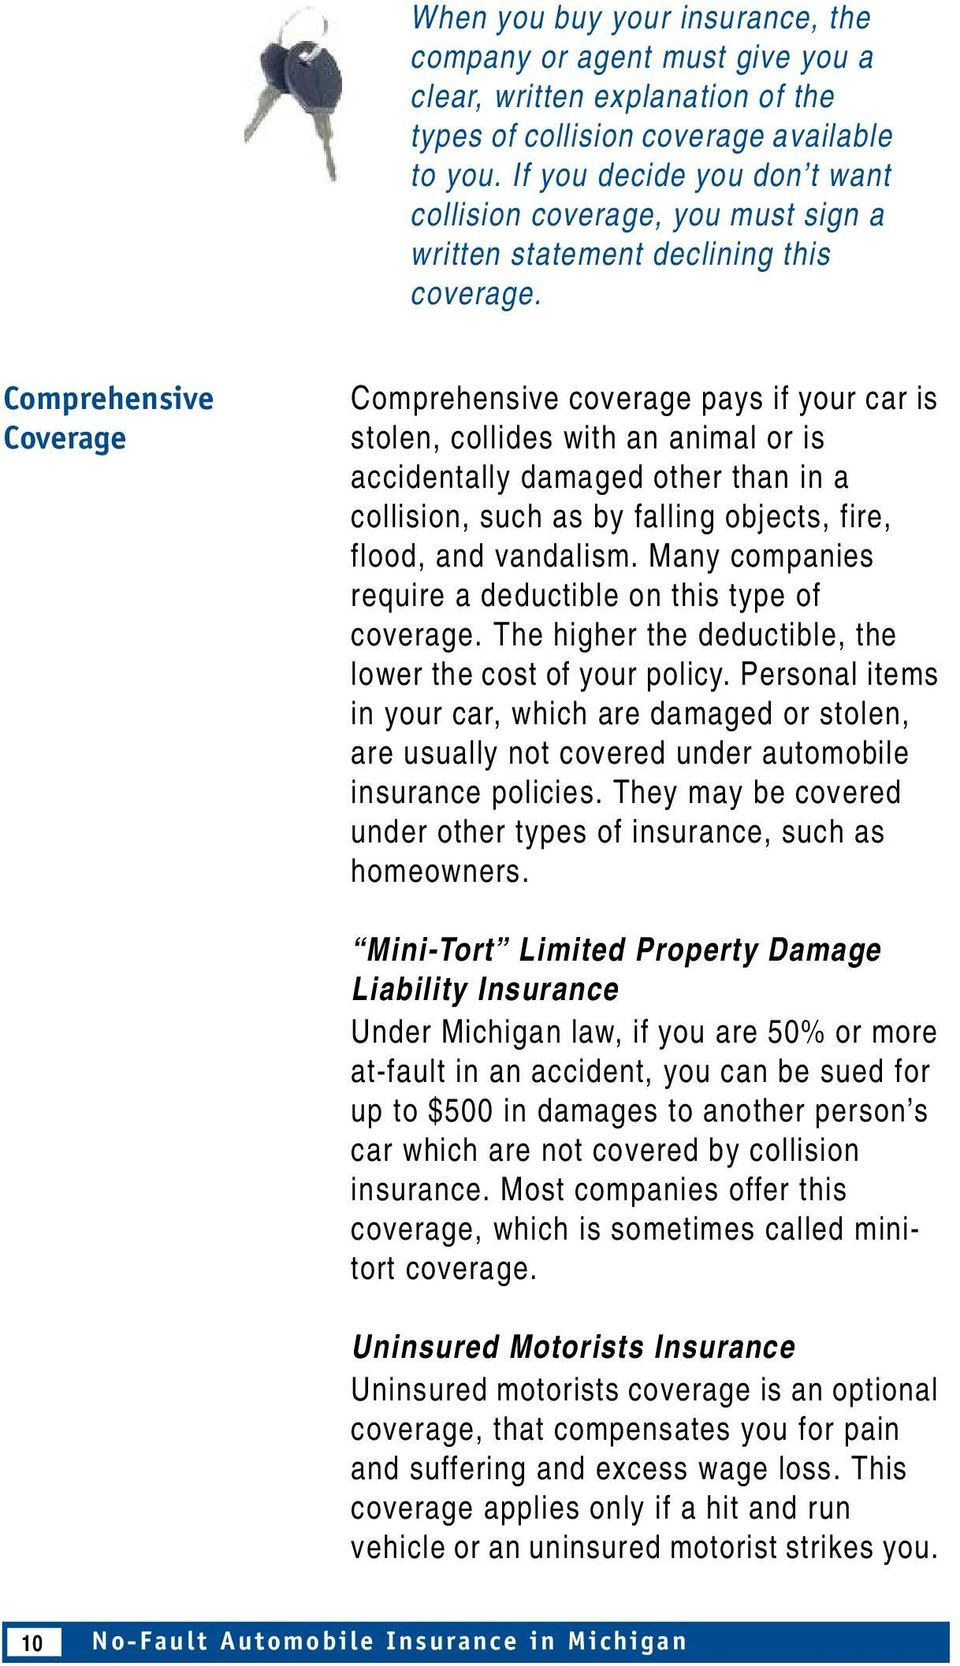 Comprehensive Coverage Comprehensive coverage pays if your car is stolen, collides with an animal or is accidentally damaged other than in a collision, such as by falling objects, fire, flood, and